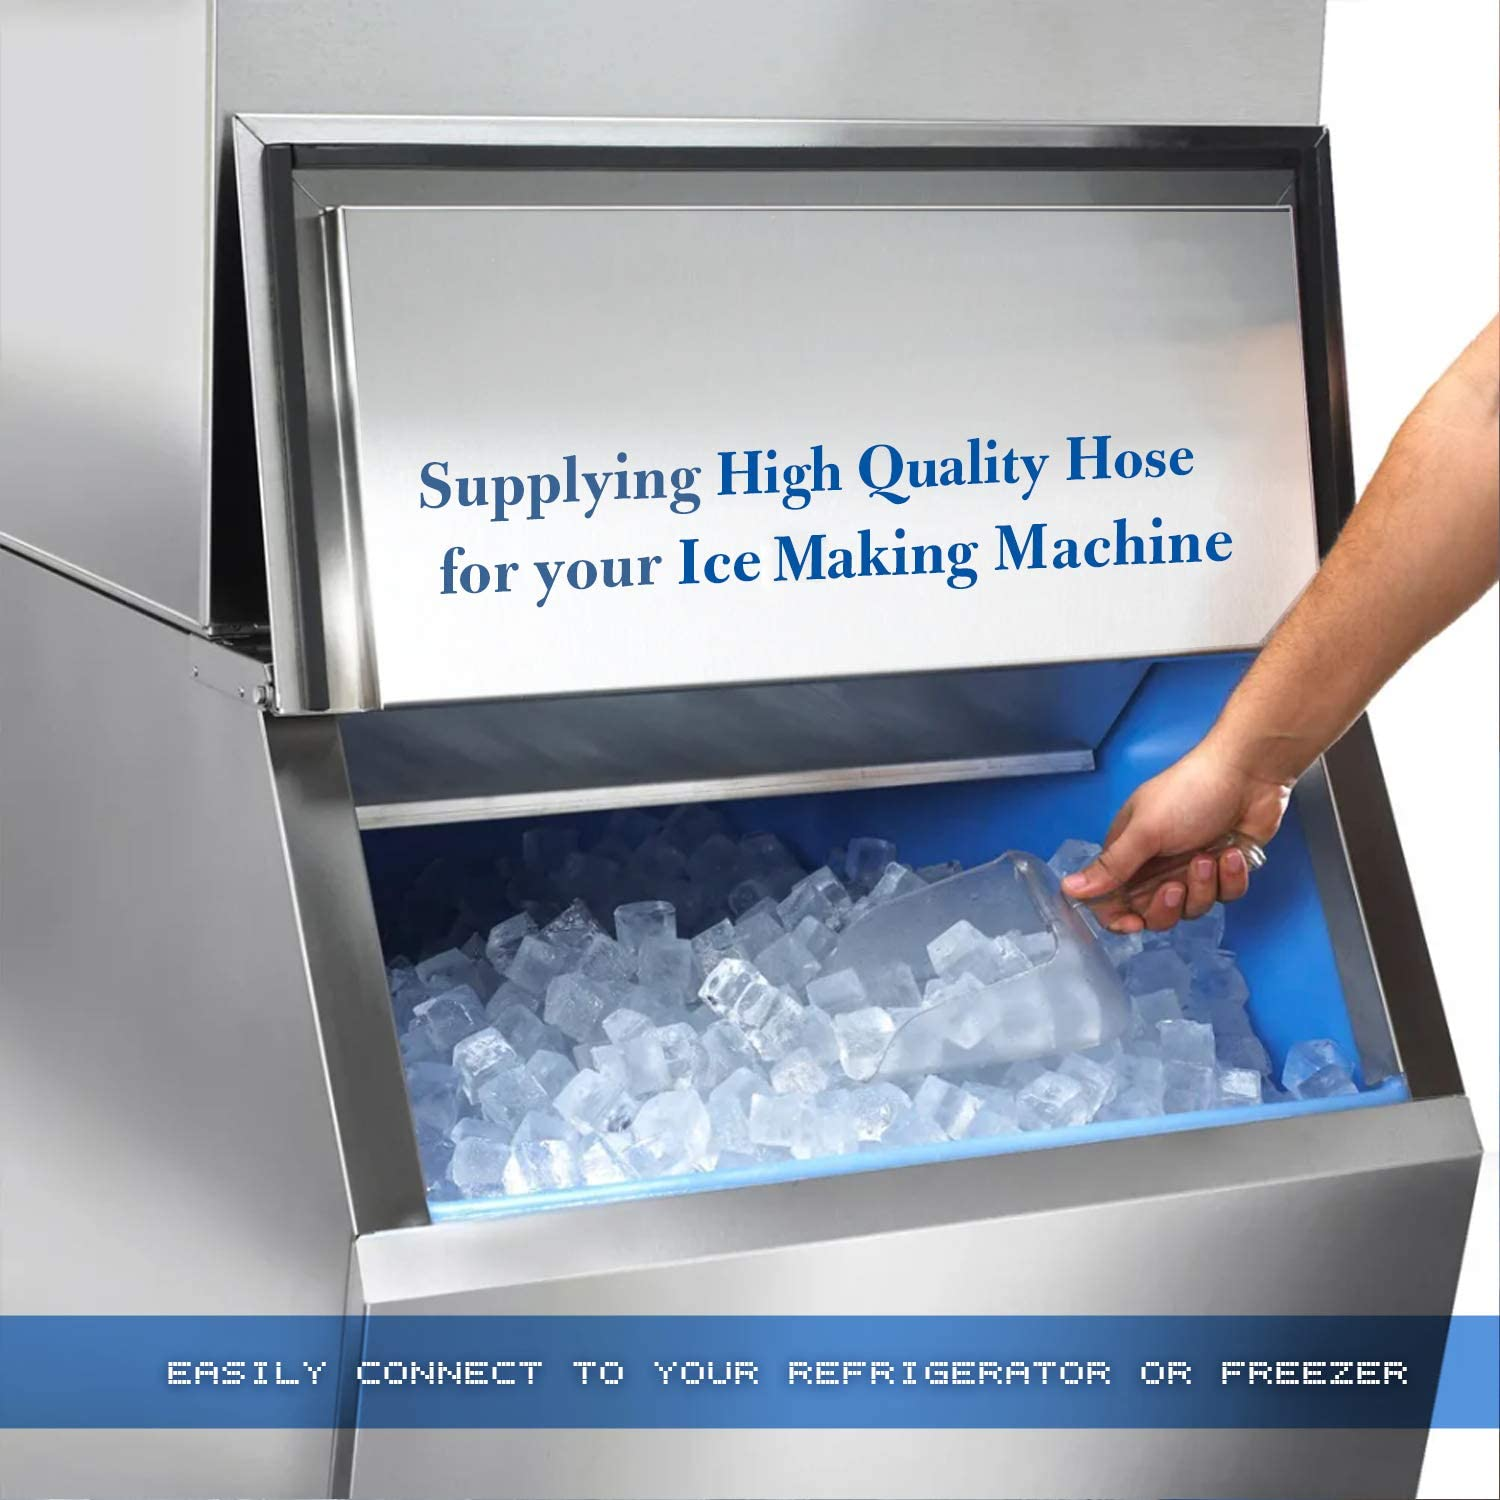 Water supply for ice maker